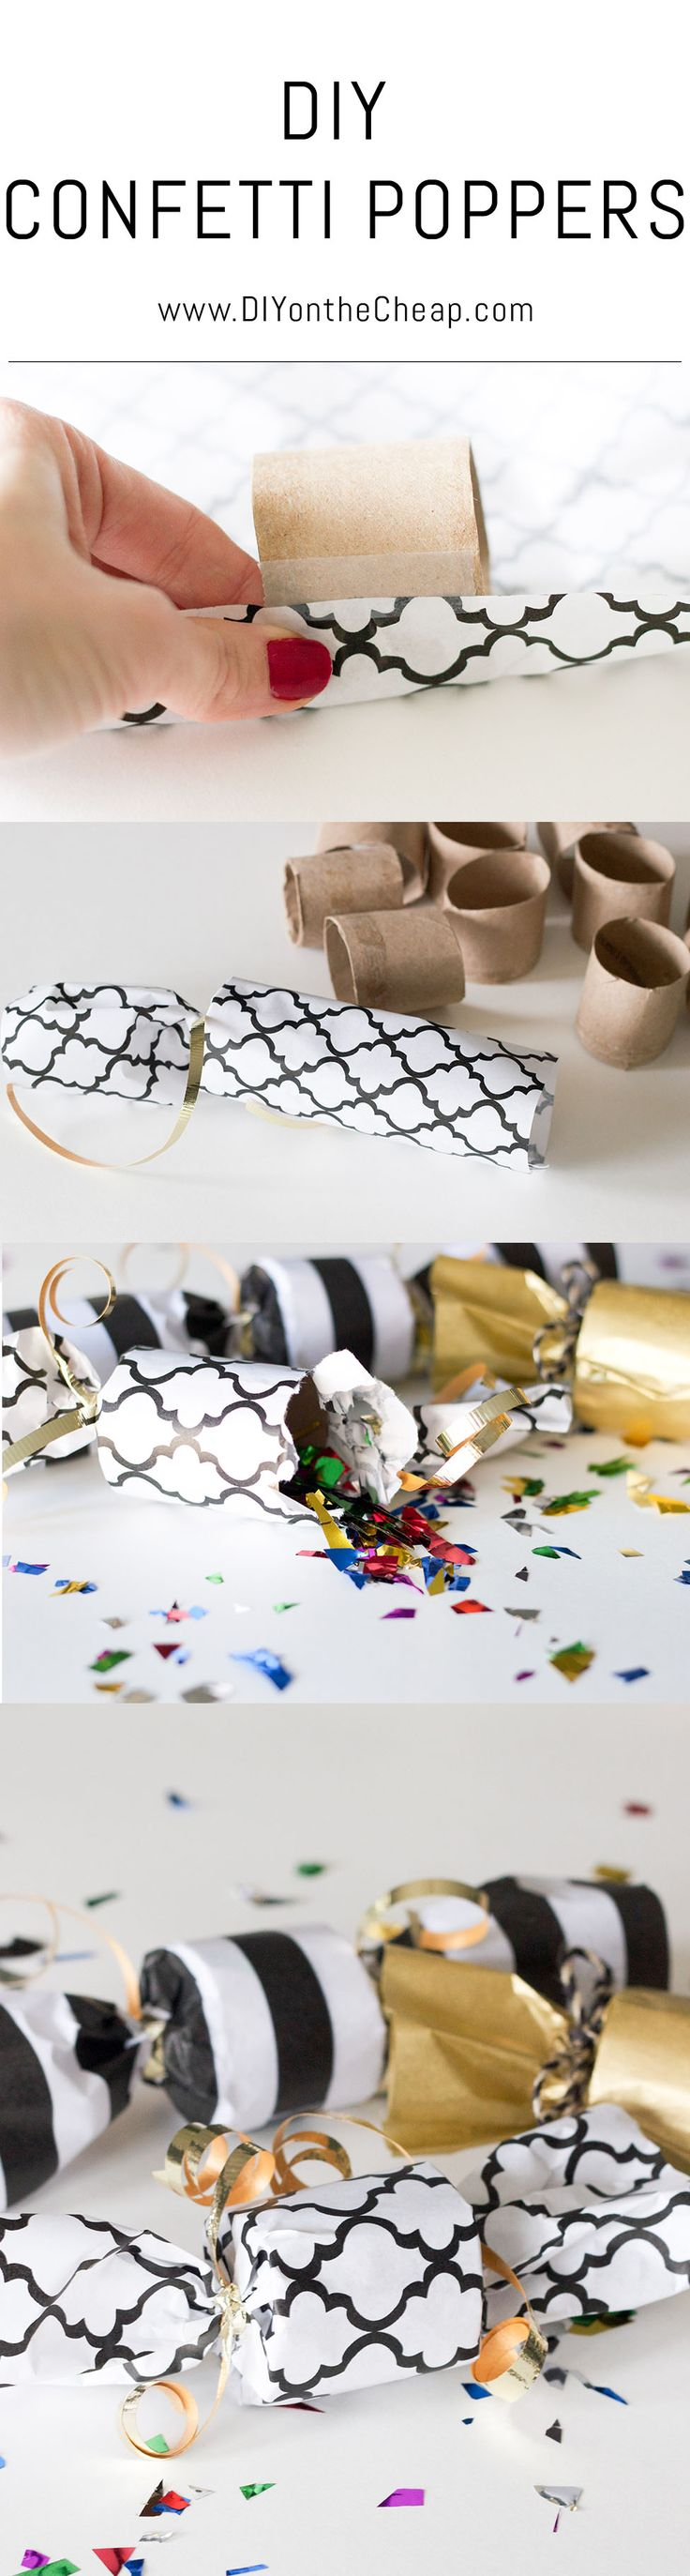 diy confetti poppers for new yearu0027s eve